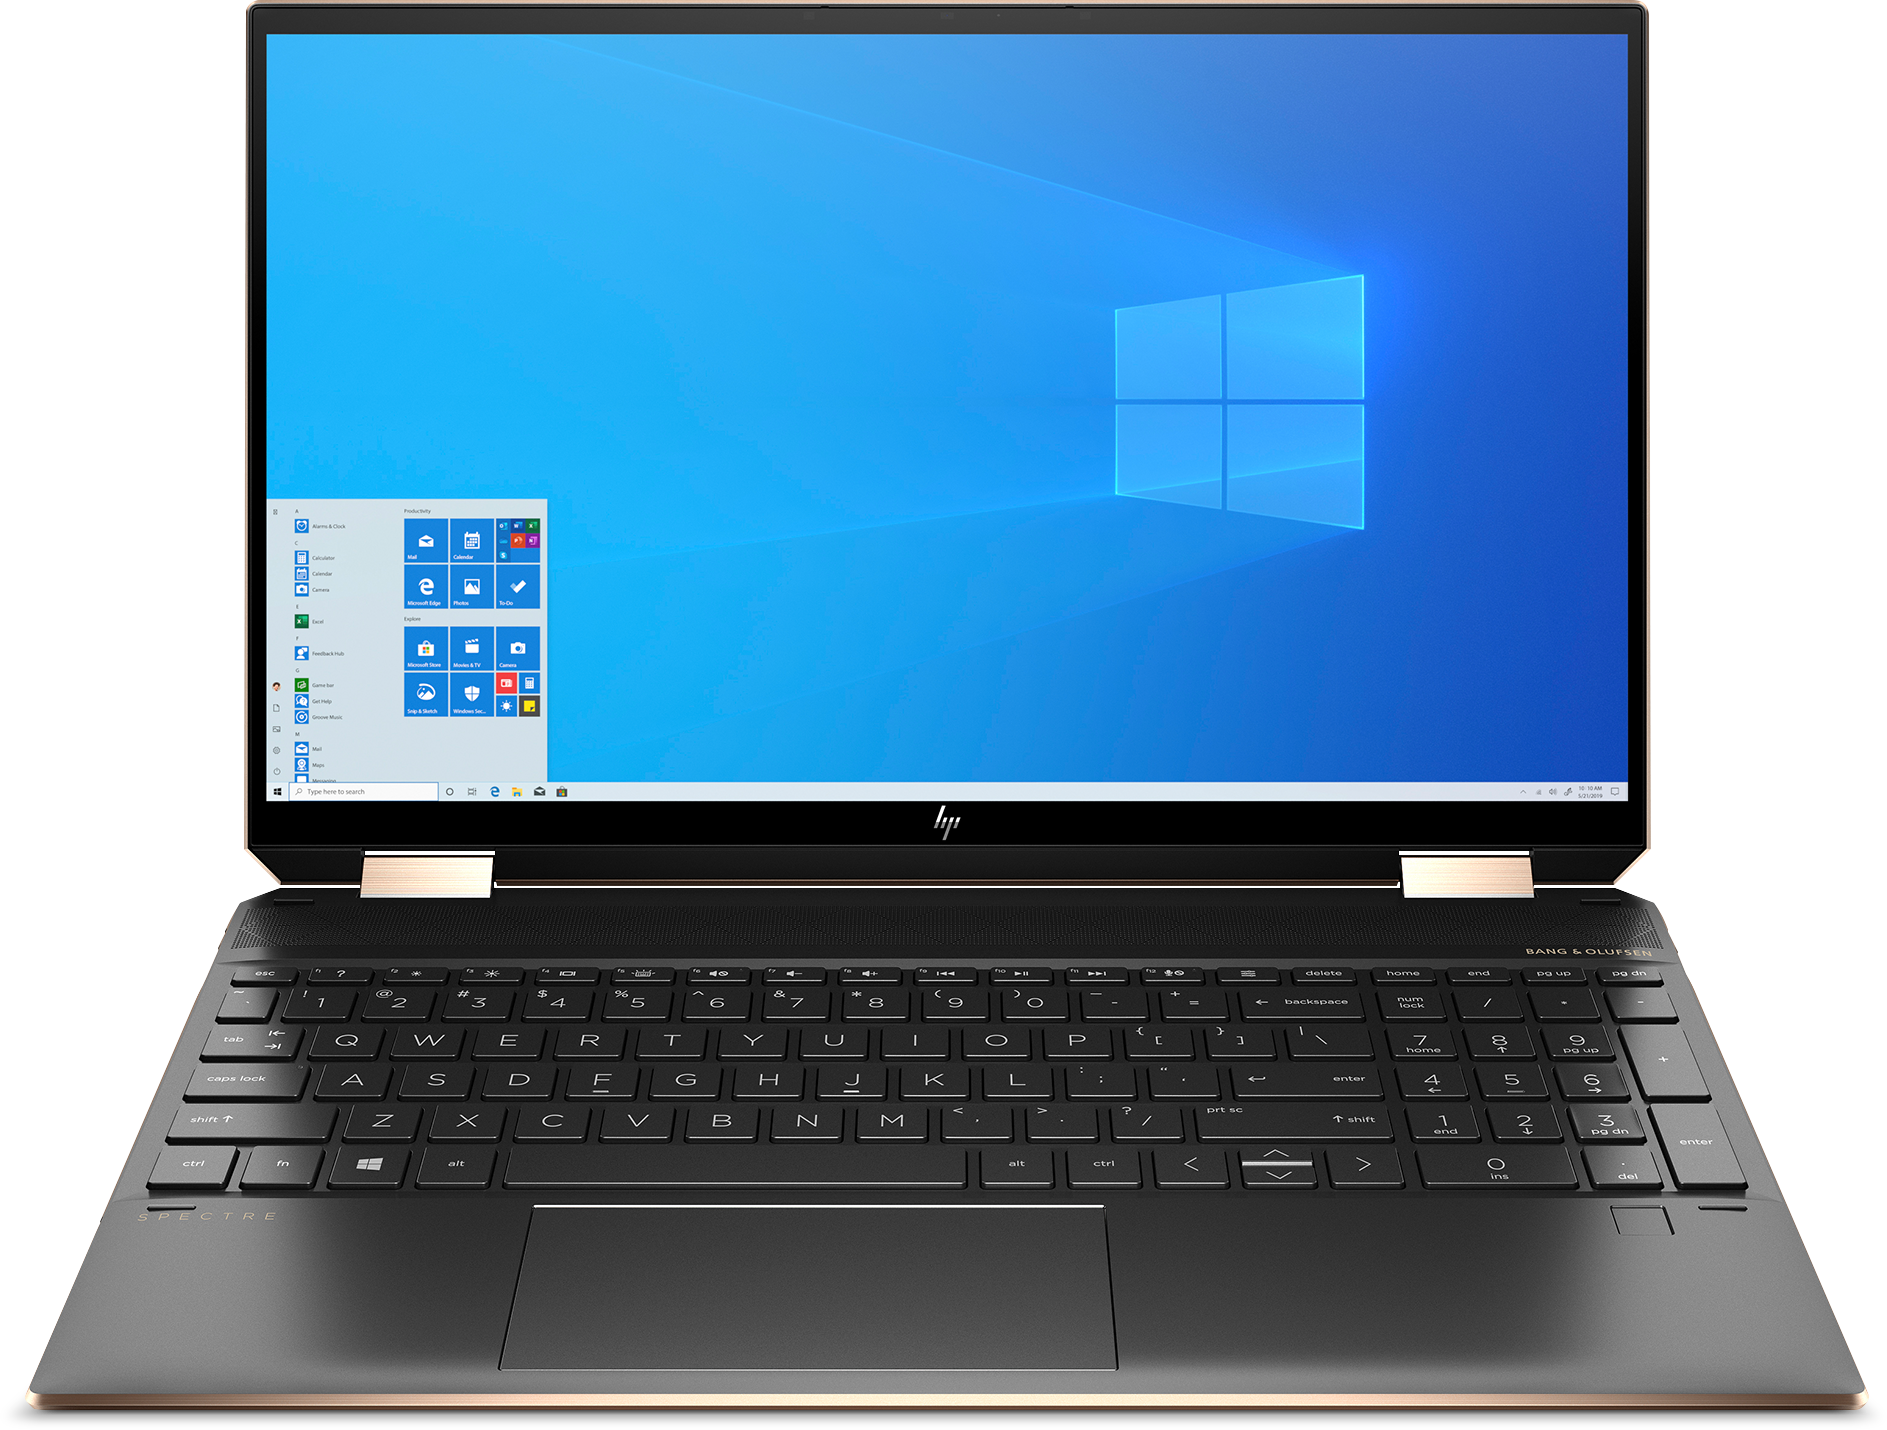 HP Spectre x360 Convertible 15-eb0053dx 2-in-1 PC